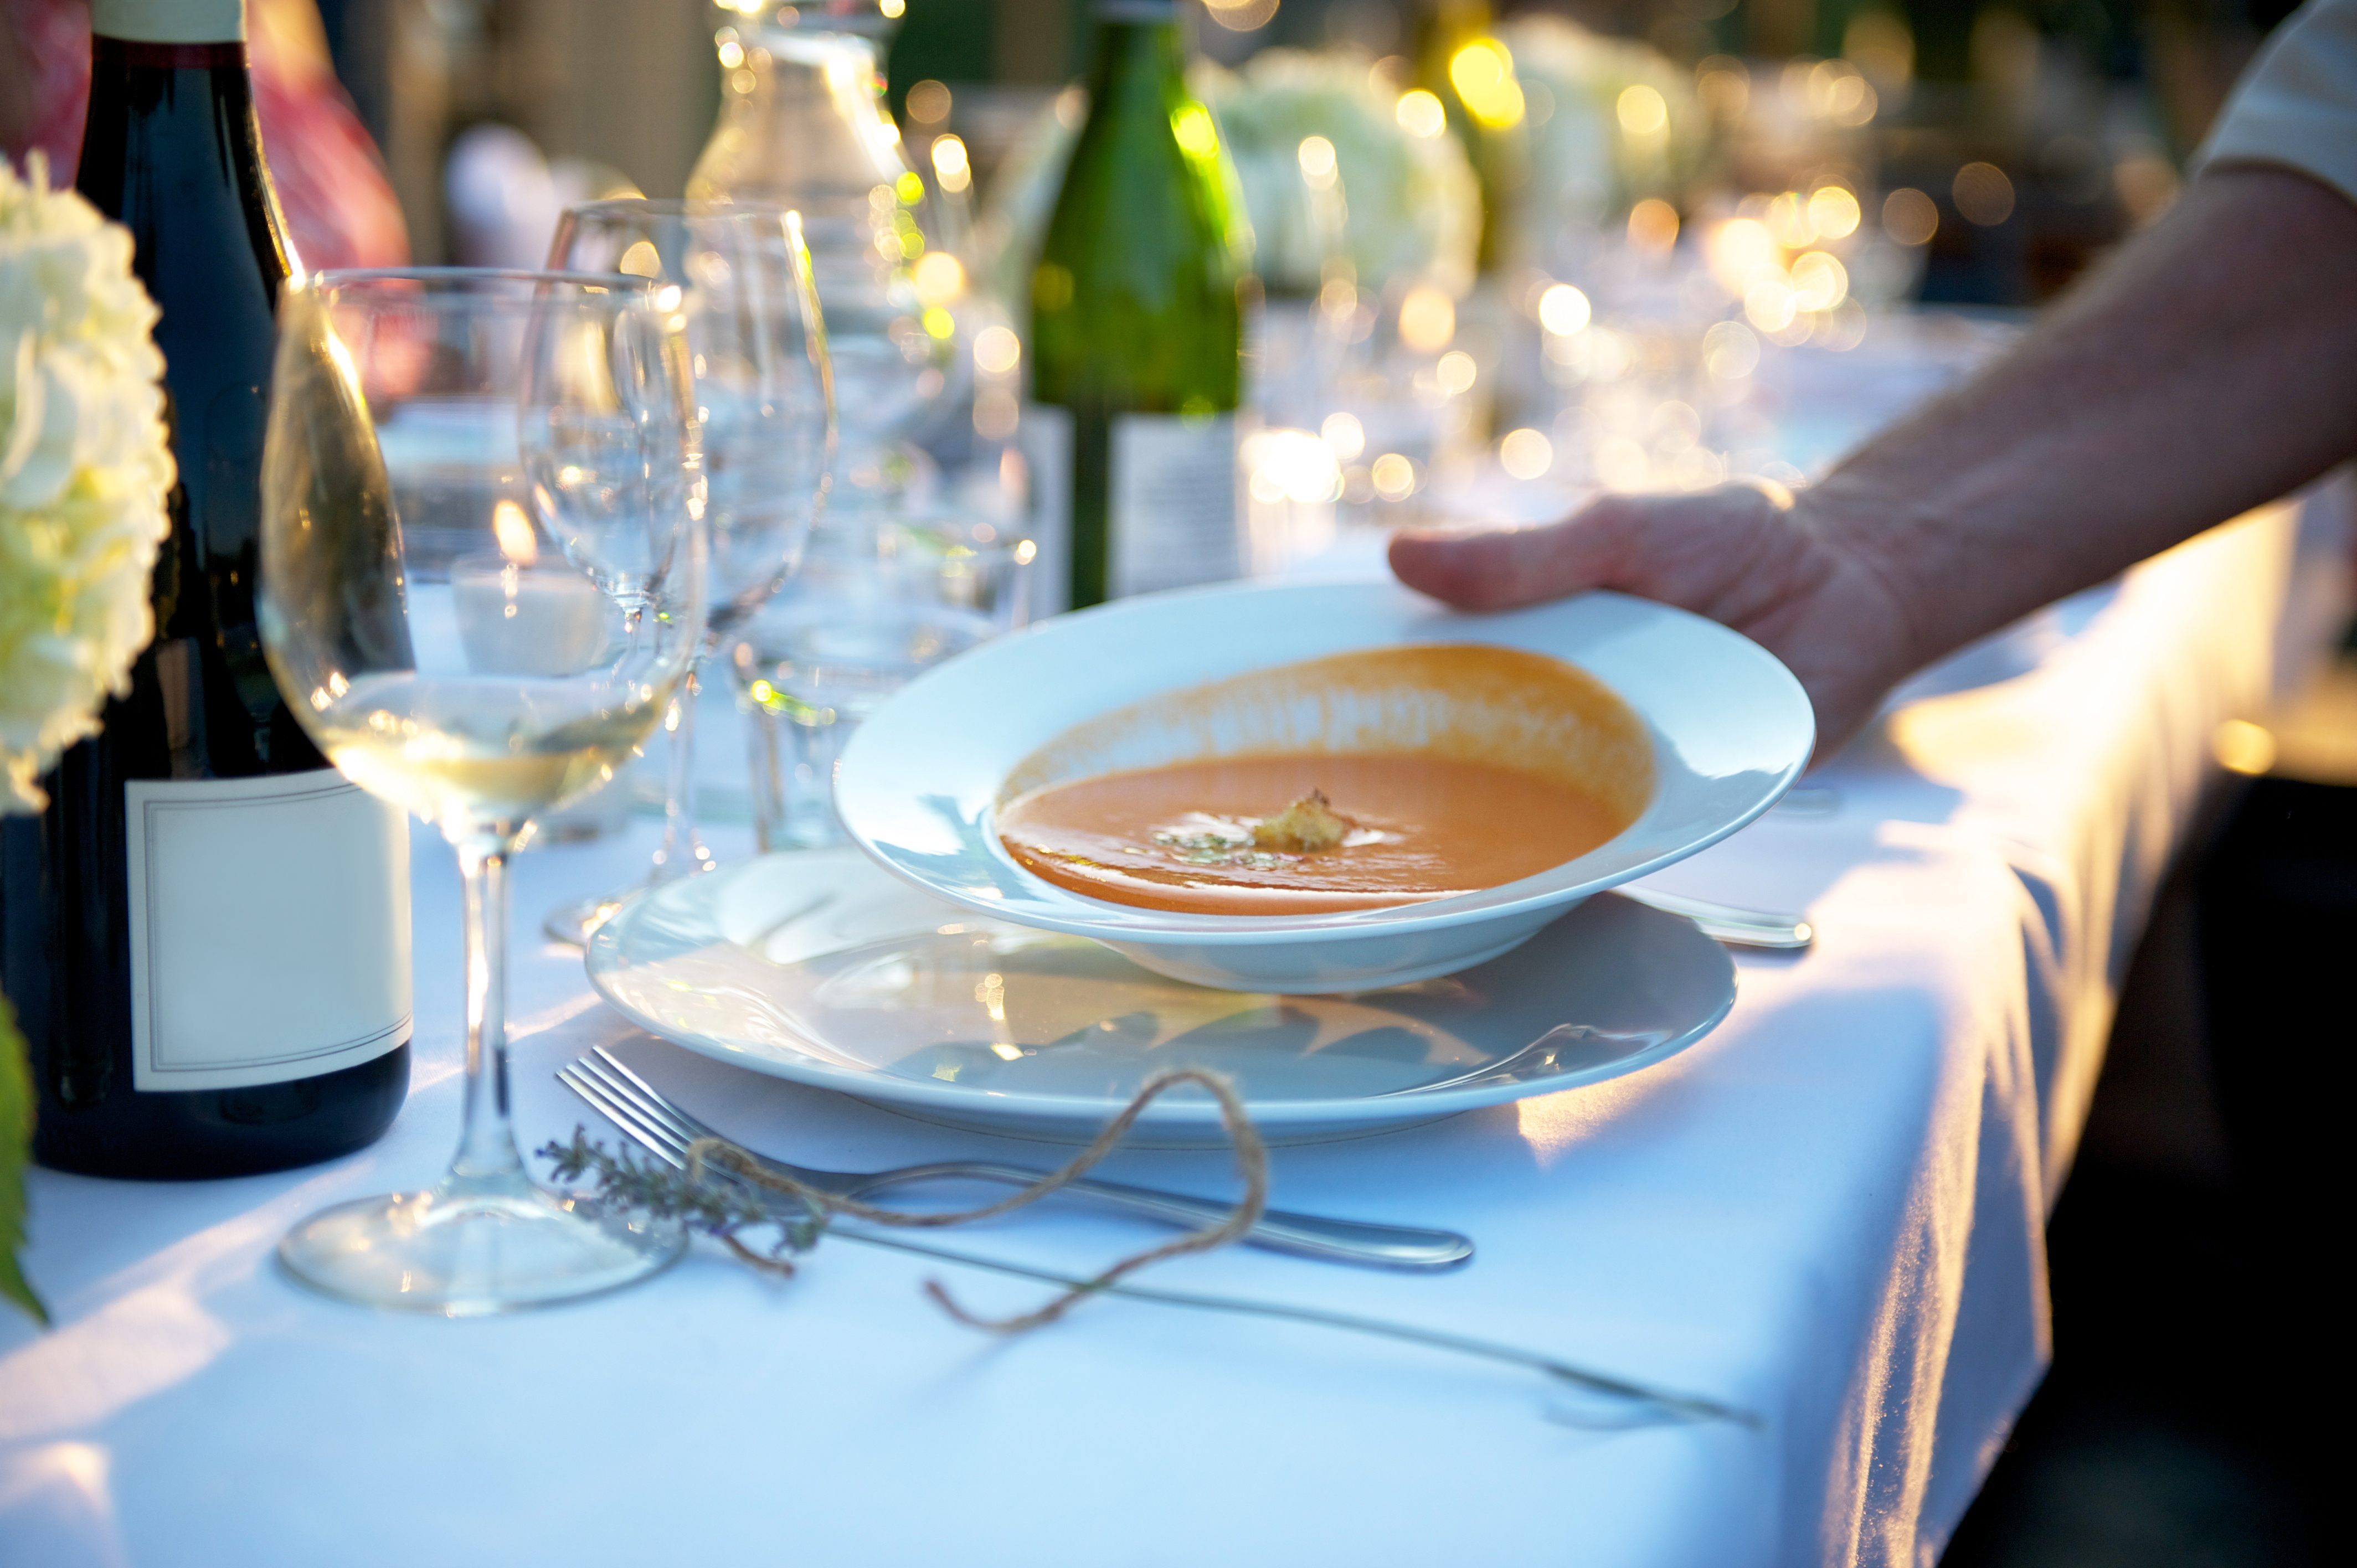 Photograph of a bowl of soup being served at an outdoor dinner party with a bottle of wine in frame with blank label.